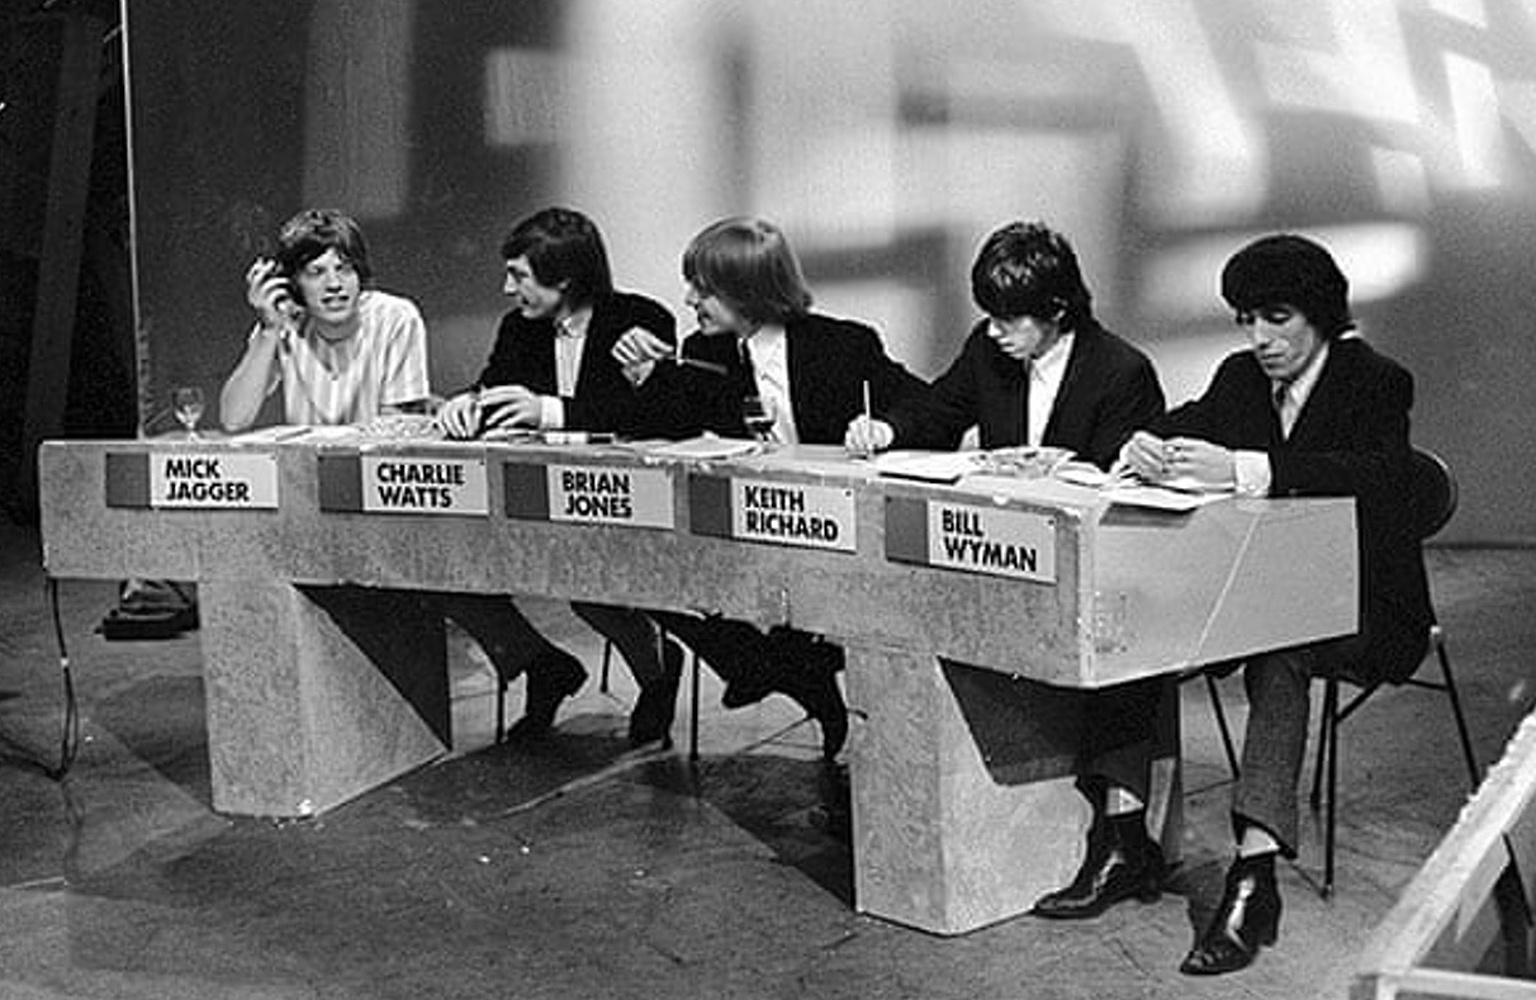 The Rolling Stones on records for Juke Box Jury at the BBC in London / 27 июня 1964